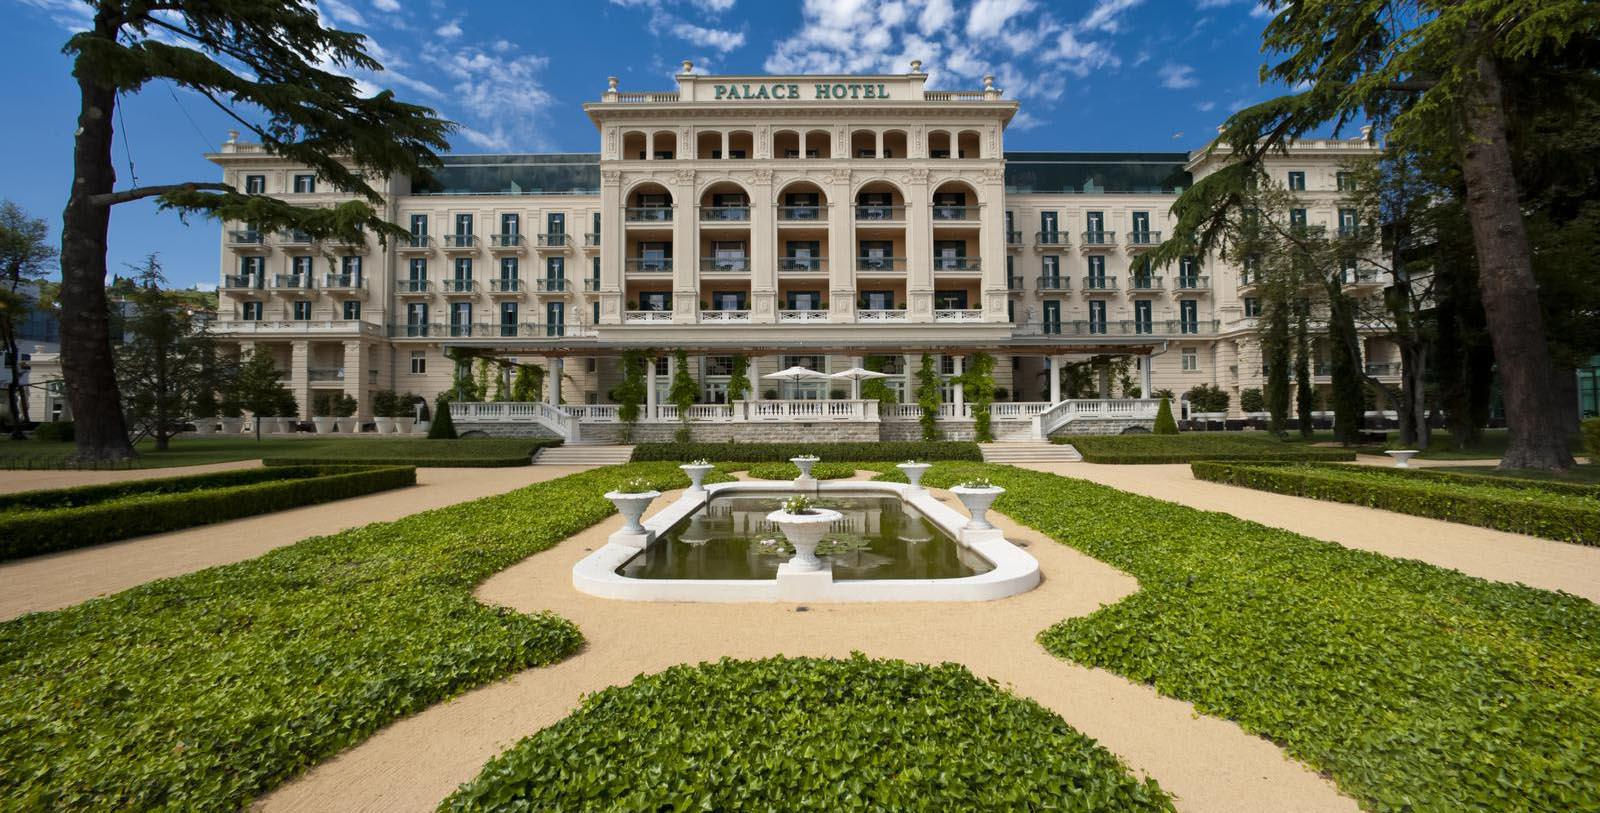 Image of Garden Kempinski Palace Portorož, 1908, Member of Historic Hotels Worldwide, in Portoroz, Slovenia, Overview